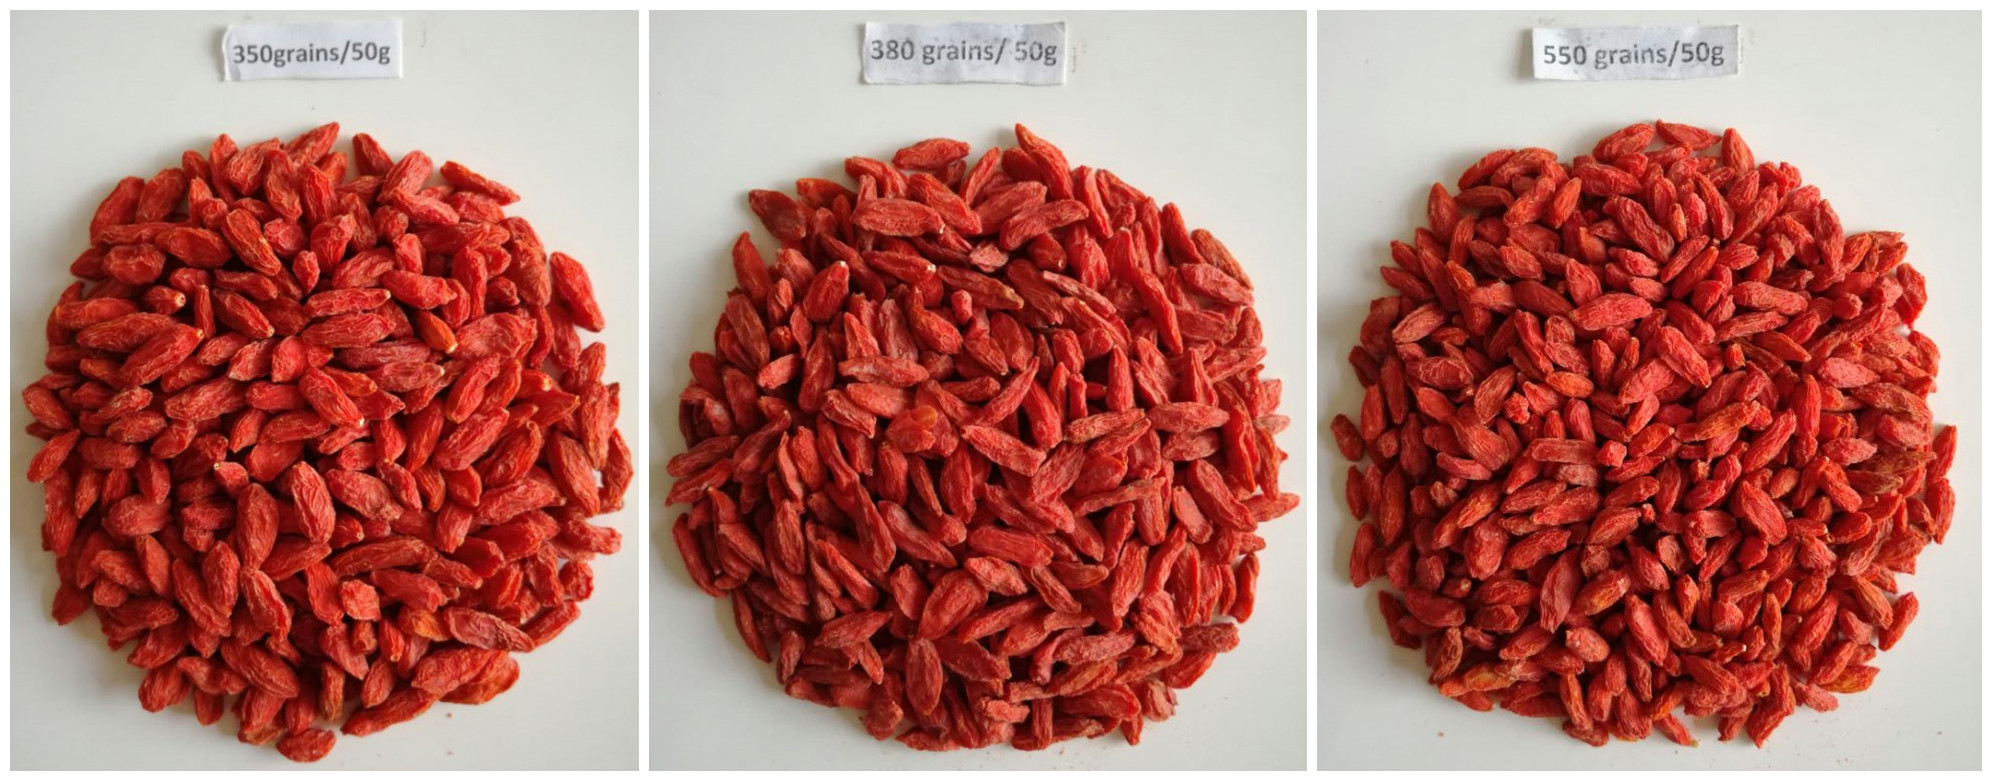 within 600 grains Goji berry